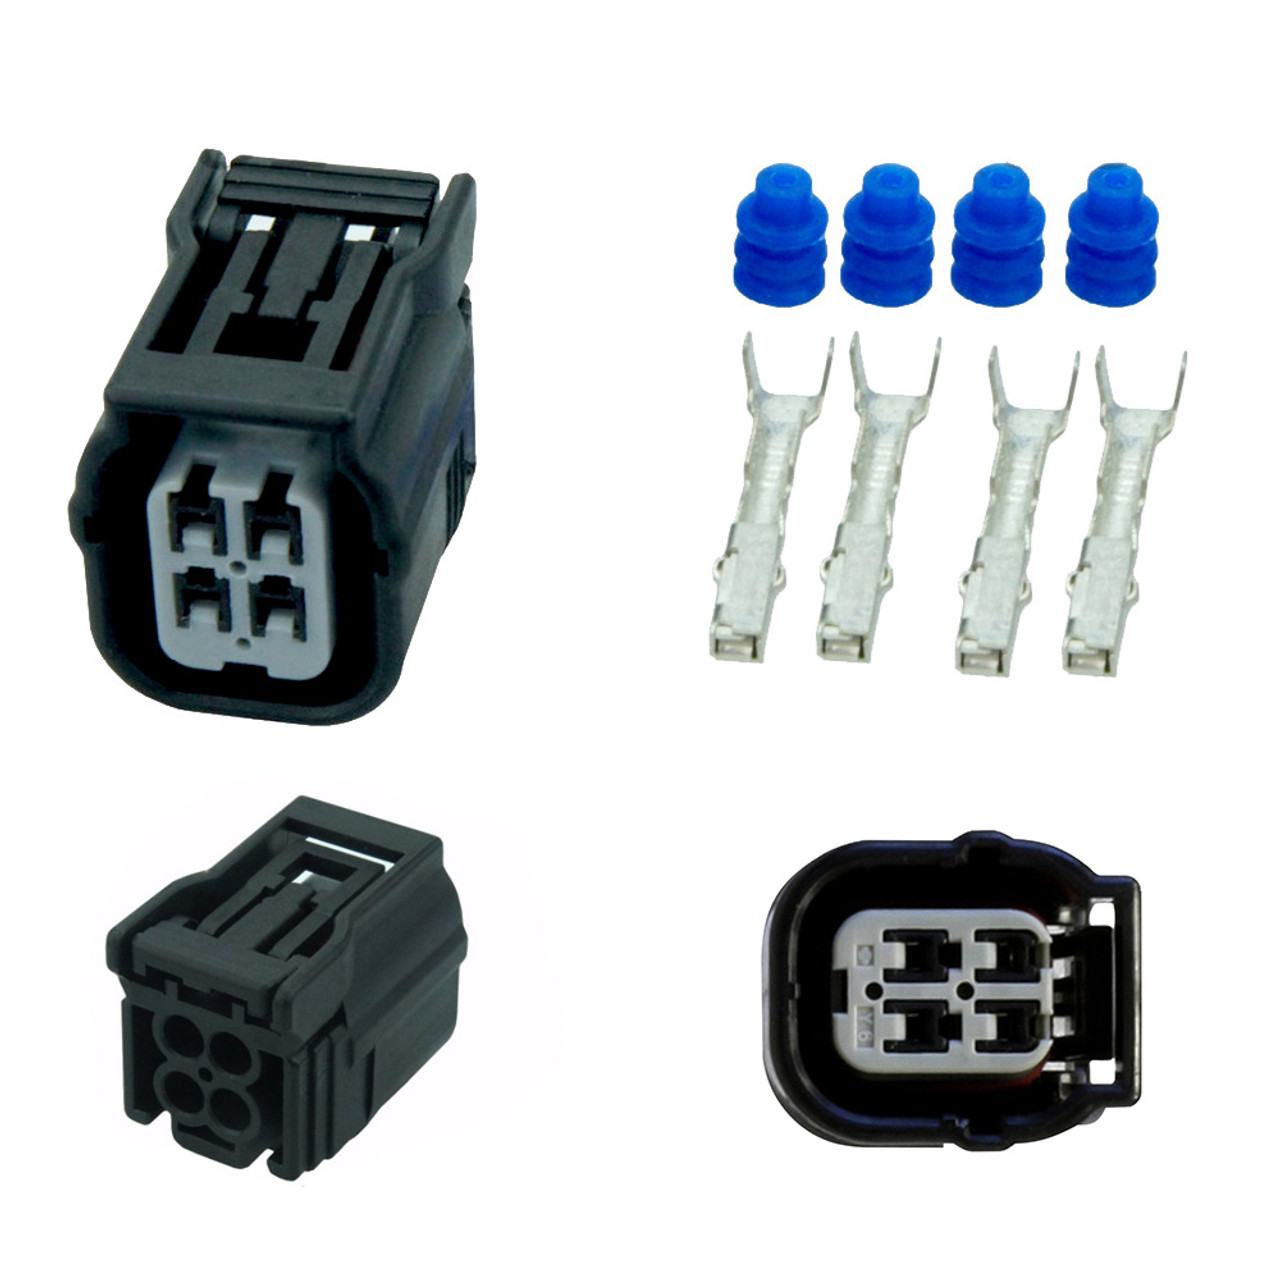 4 wire o2 oxygen sensor female connector harness kit for honda accord civic cr v [ 1280 x 1280 Pixel ]